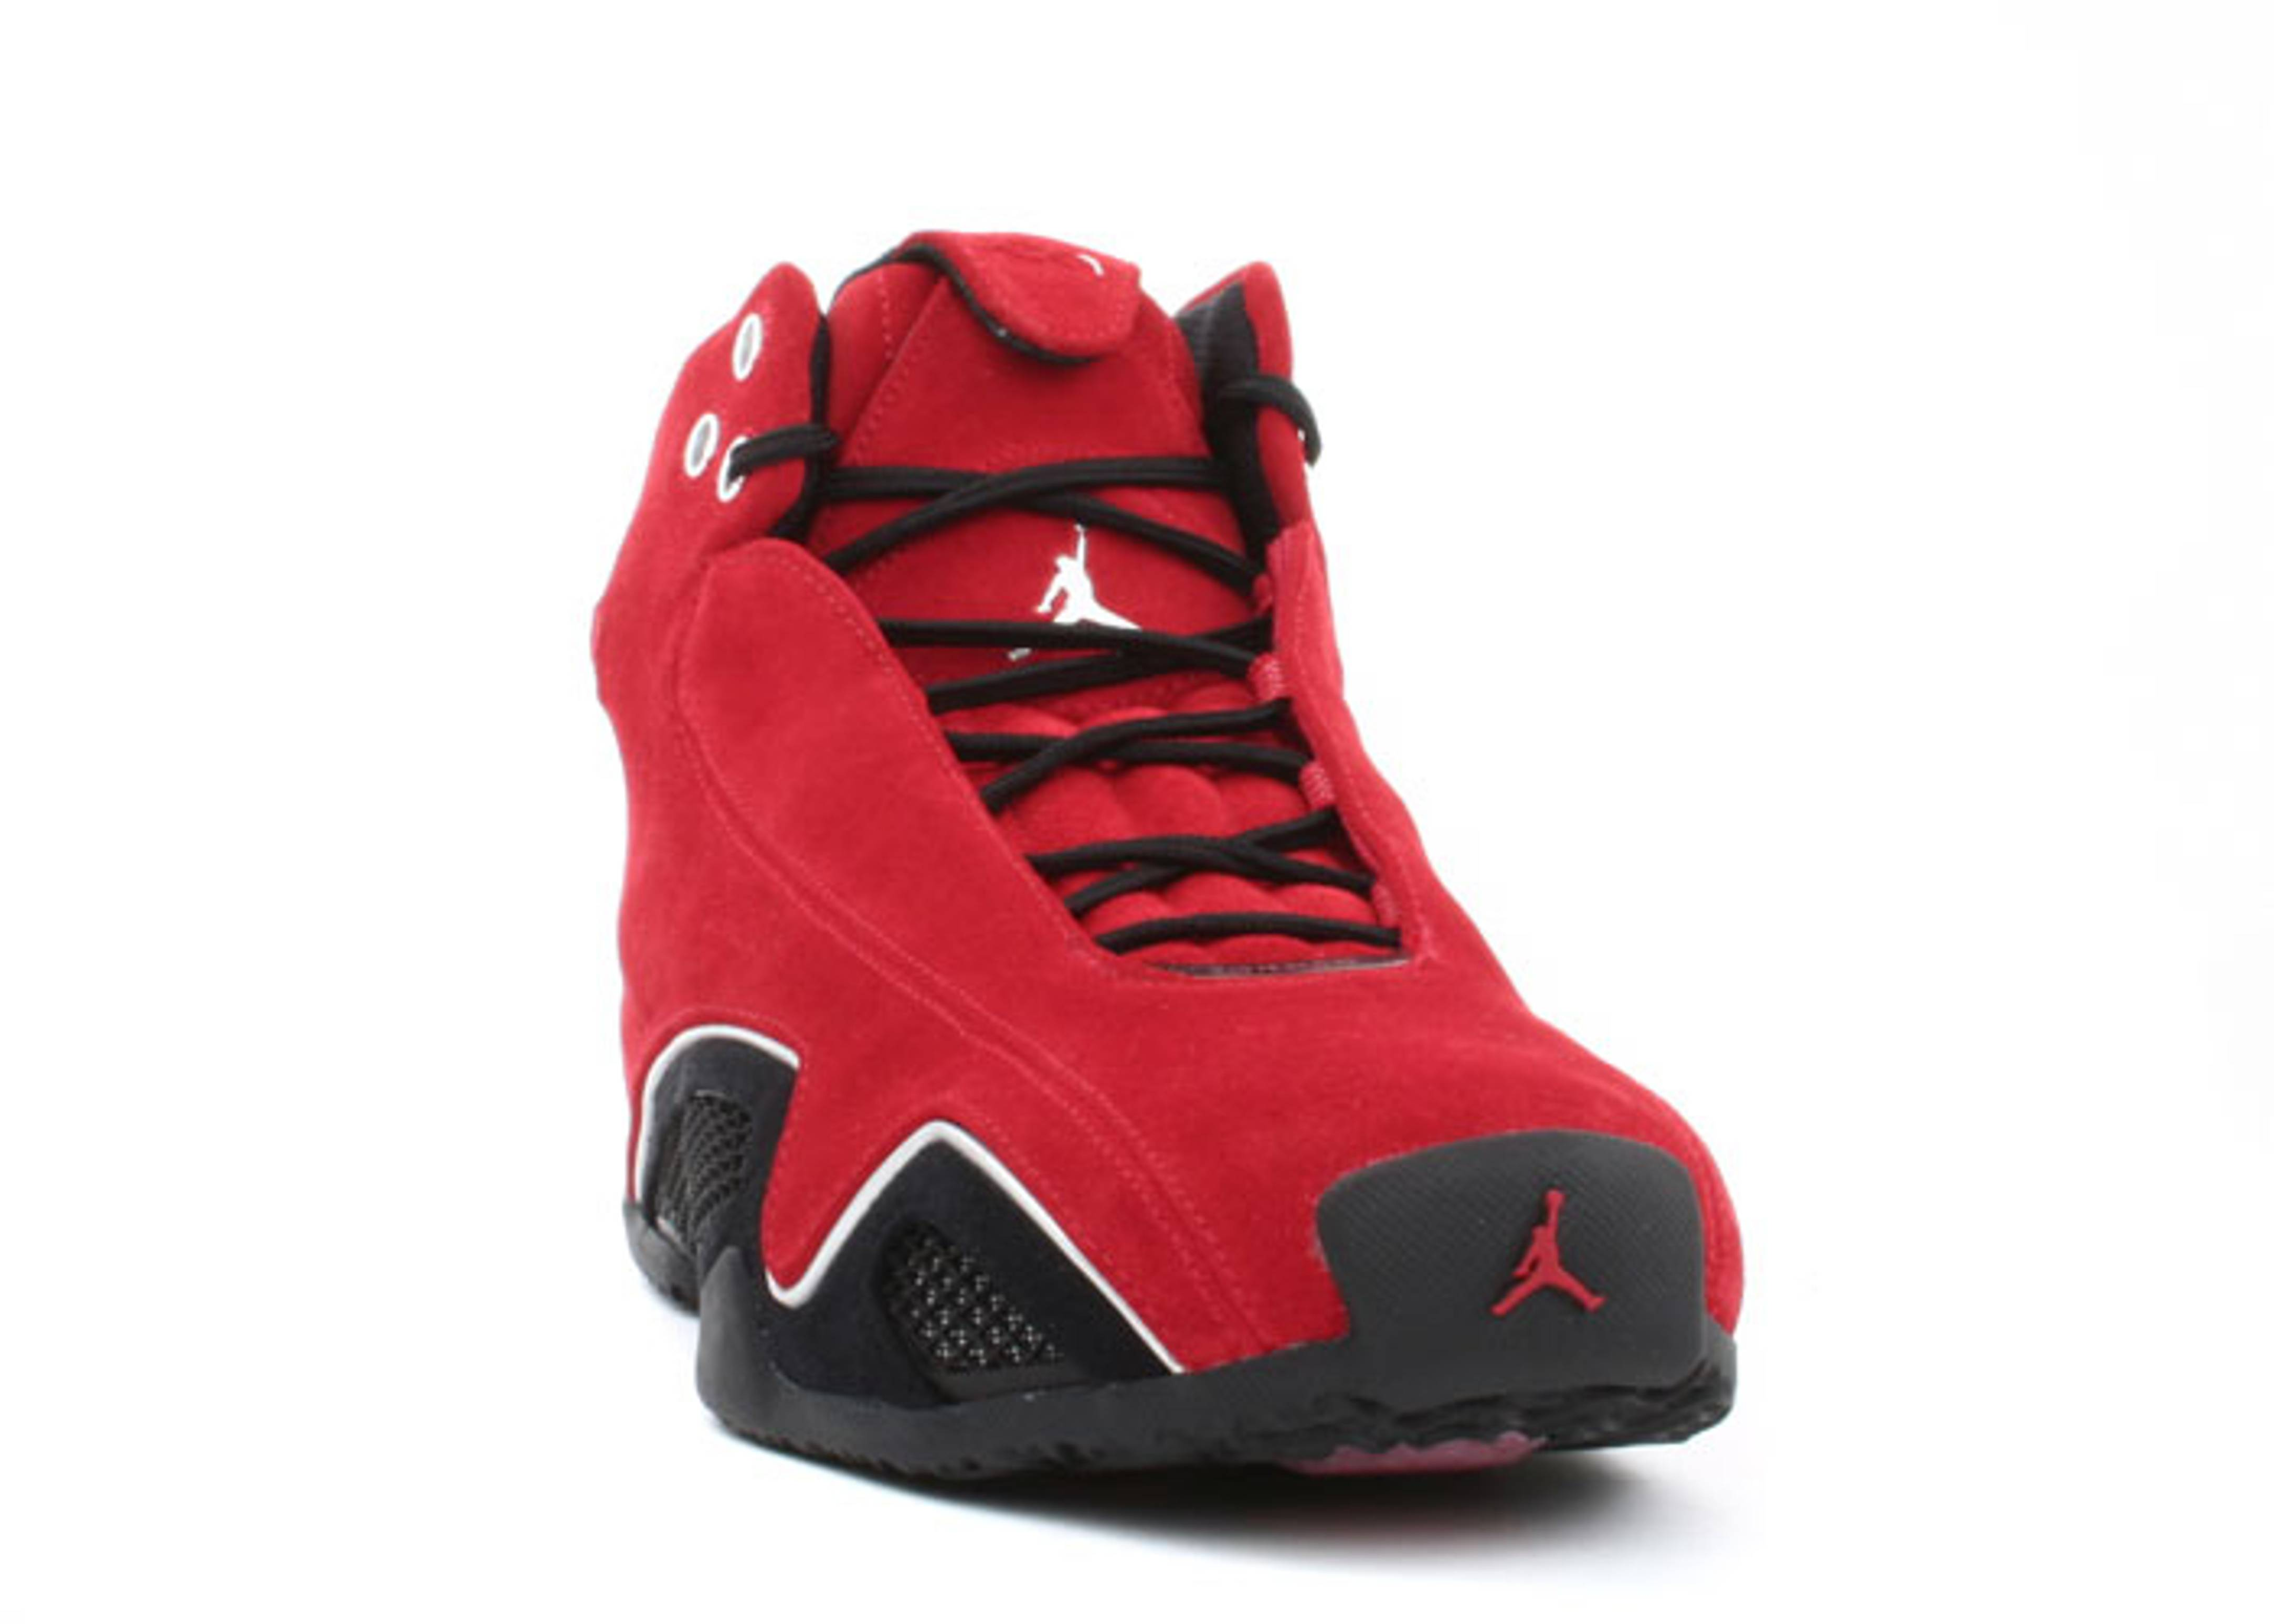 bbb31a522f71 Air Jordan 21 Red Suede ukpinefurniture.co.uk